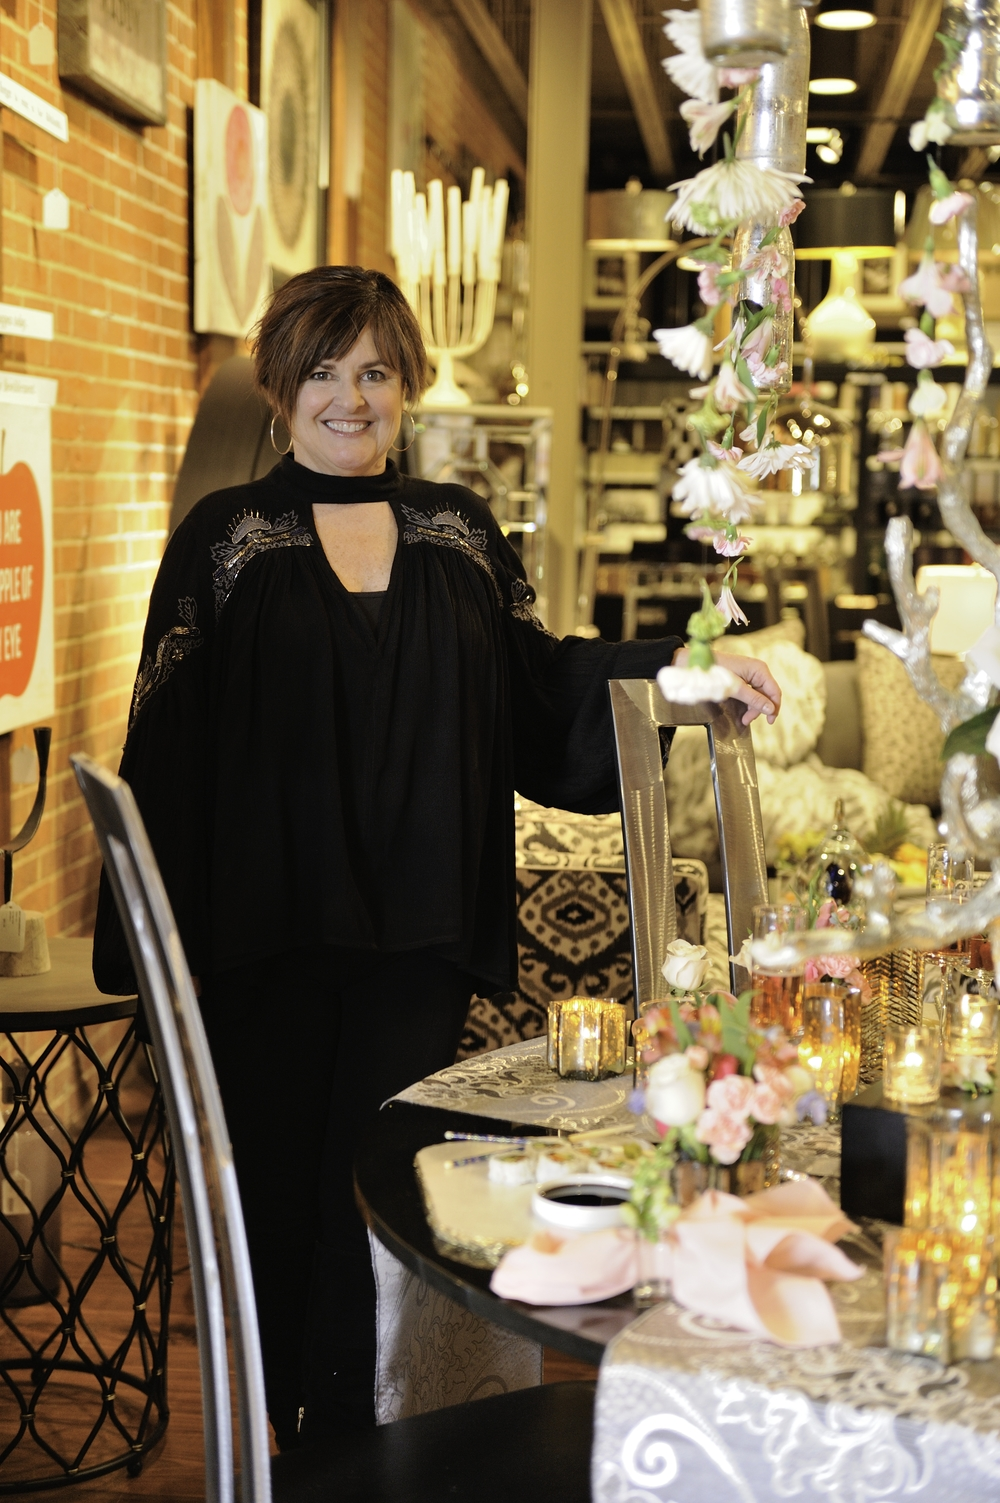 Designer Kathleen Matthews and her magical tabletop creation.